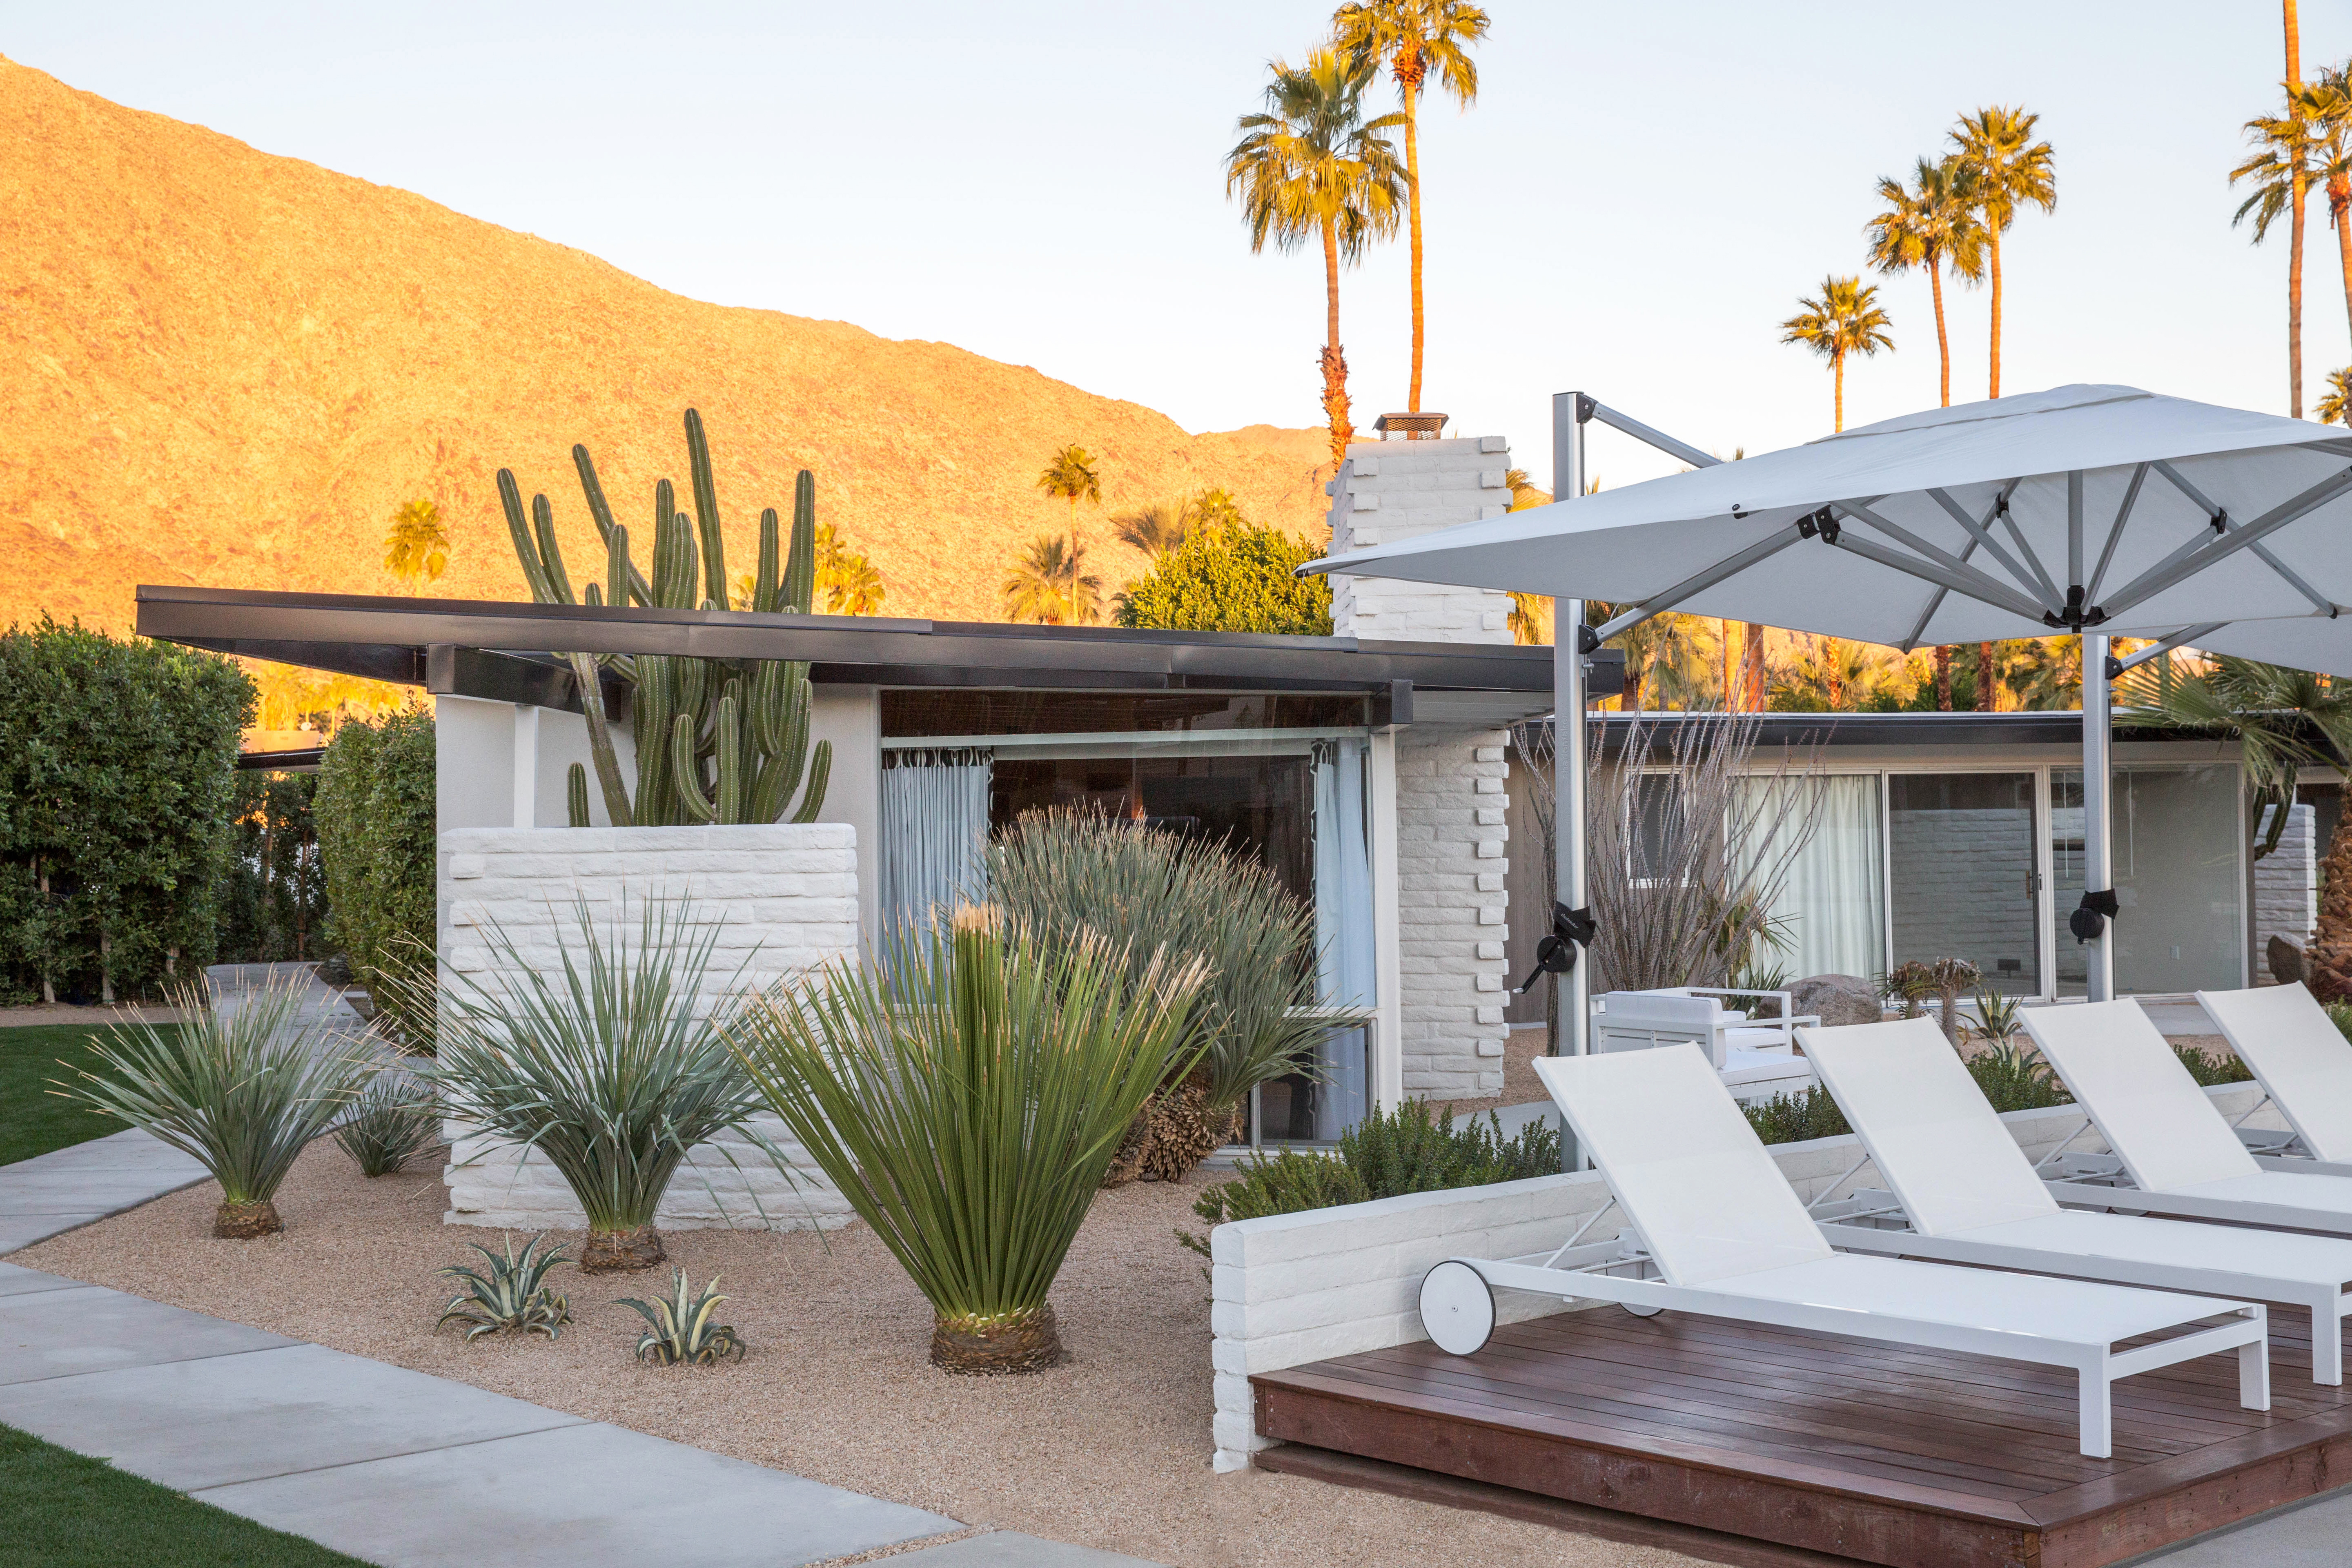 The Desert Collective's Jaime Kowal's guide to Palm Springs